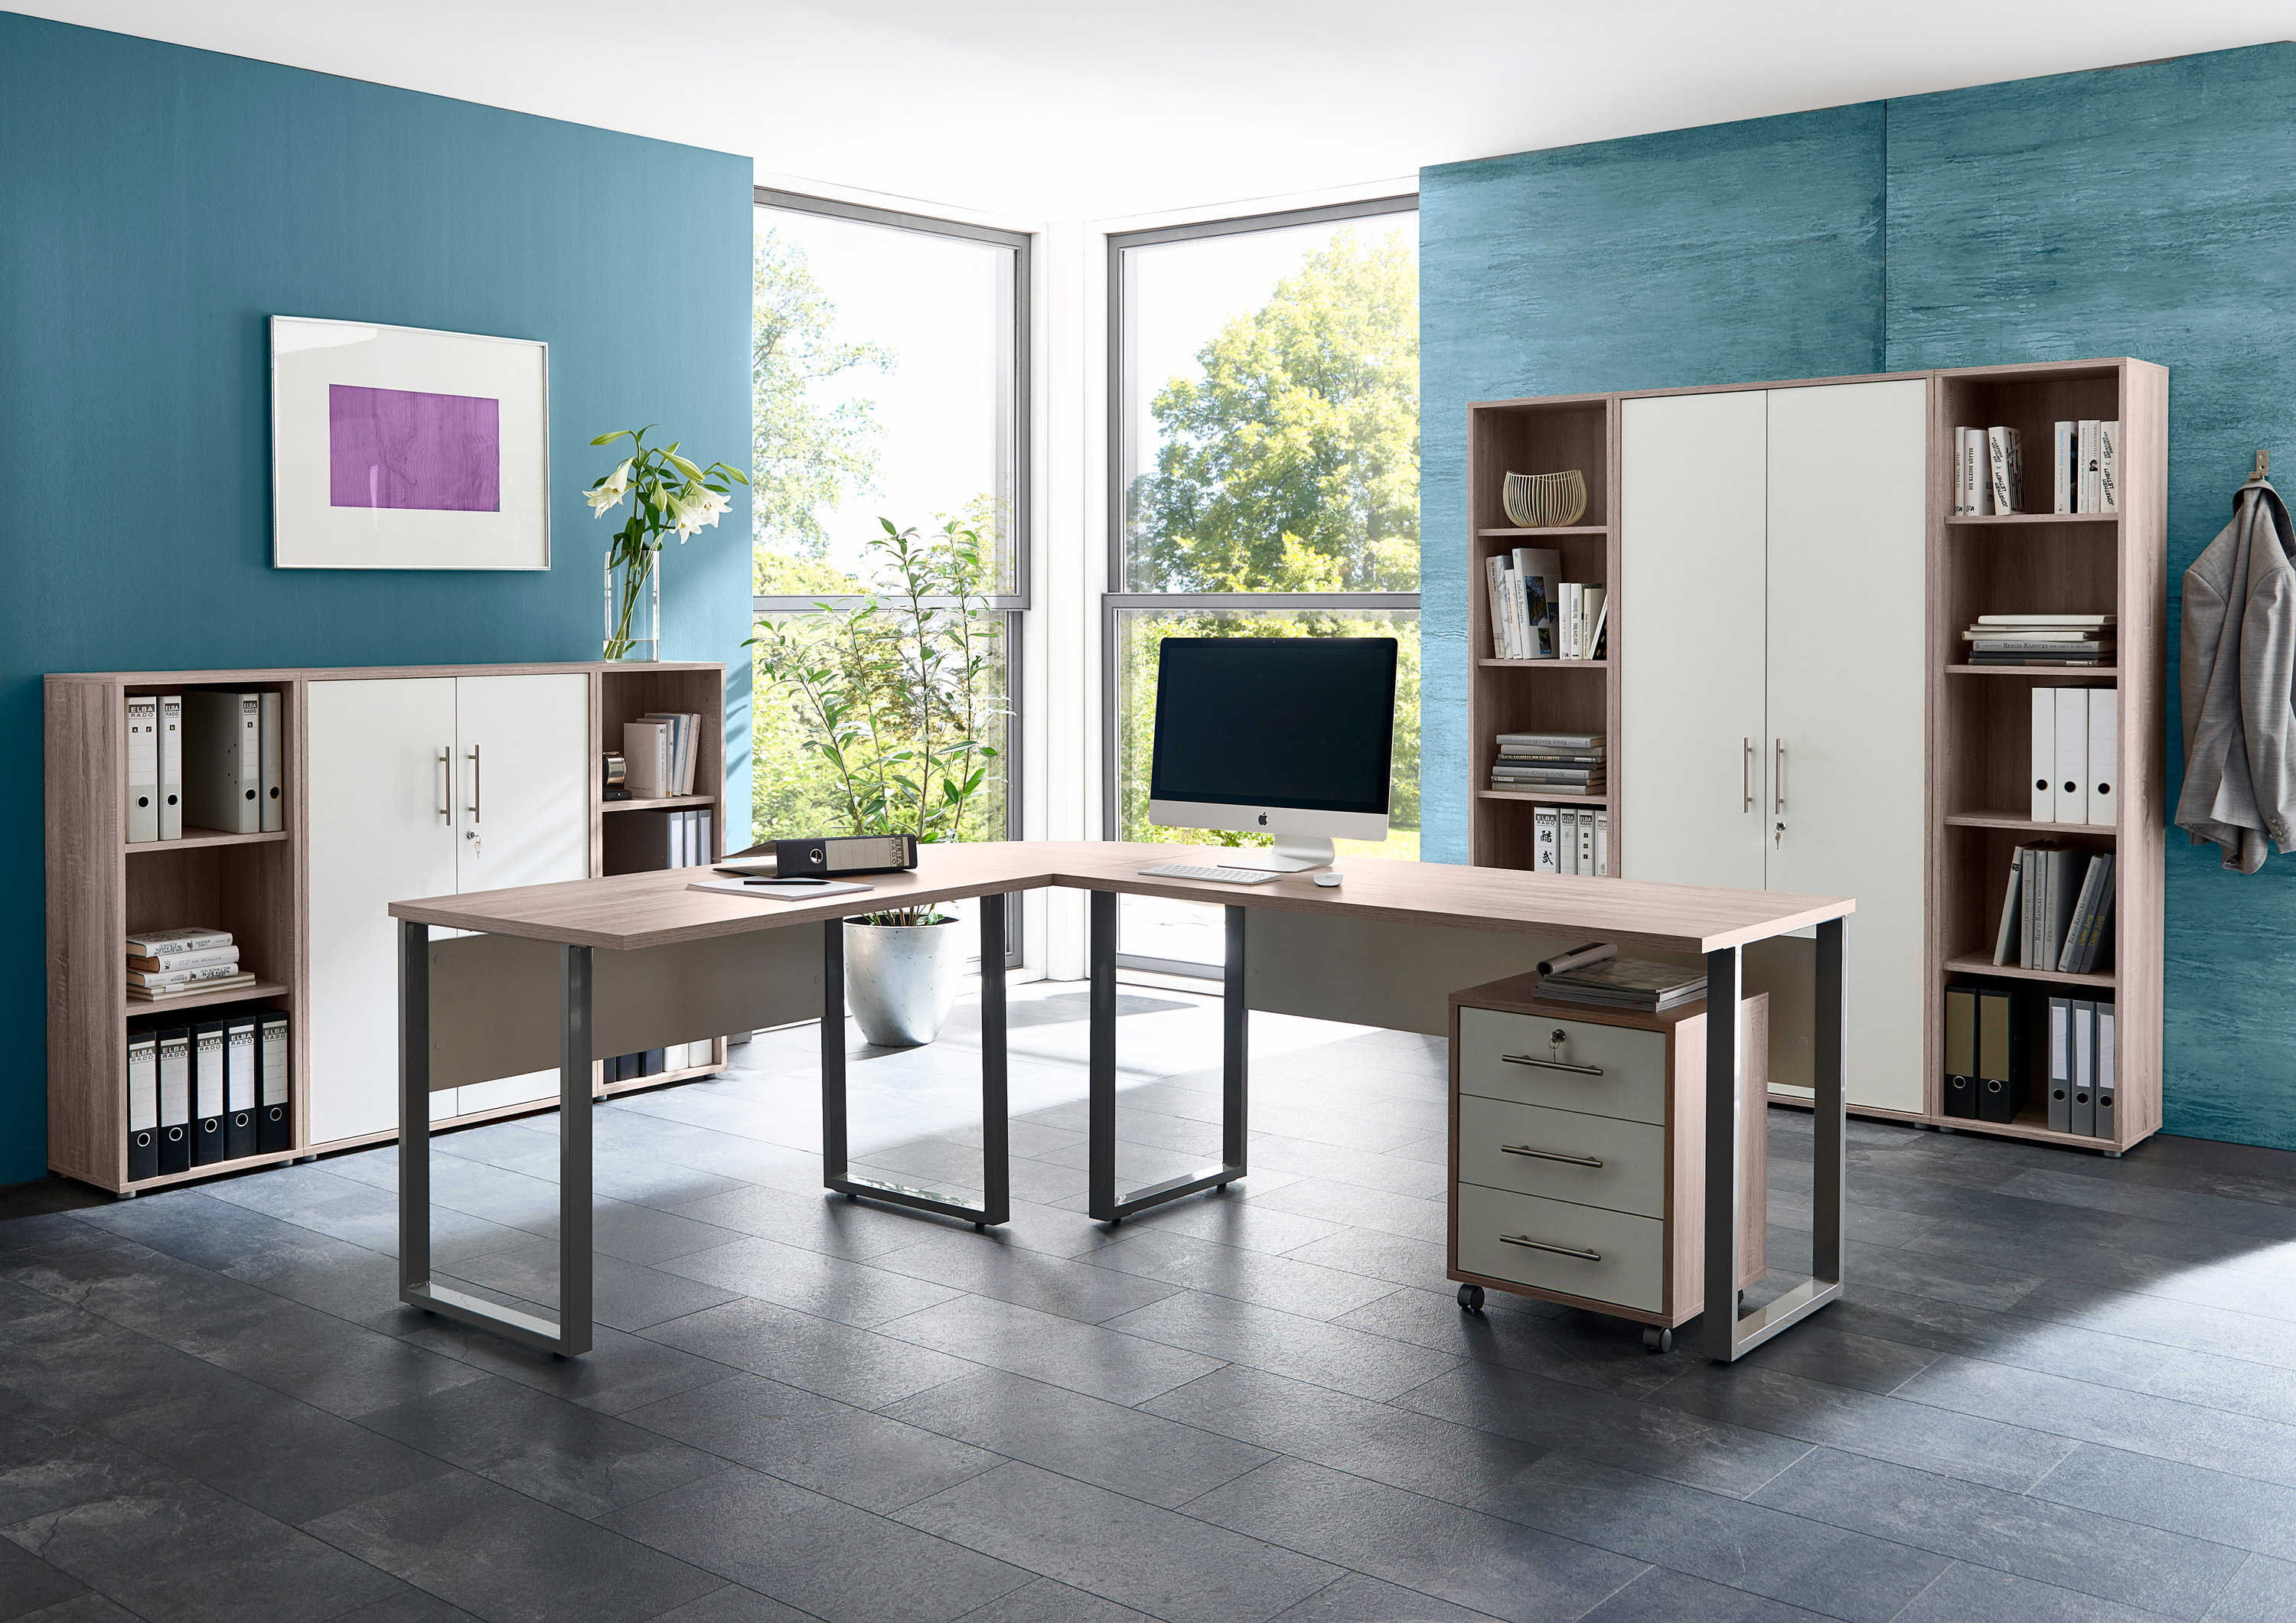 arbeitszimmer b ro office edition in sandeiche wei set 5 moebel dich. Black Bedroom Furniture Sets. Home Design Ideas